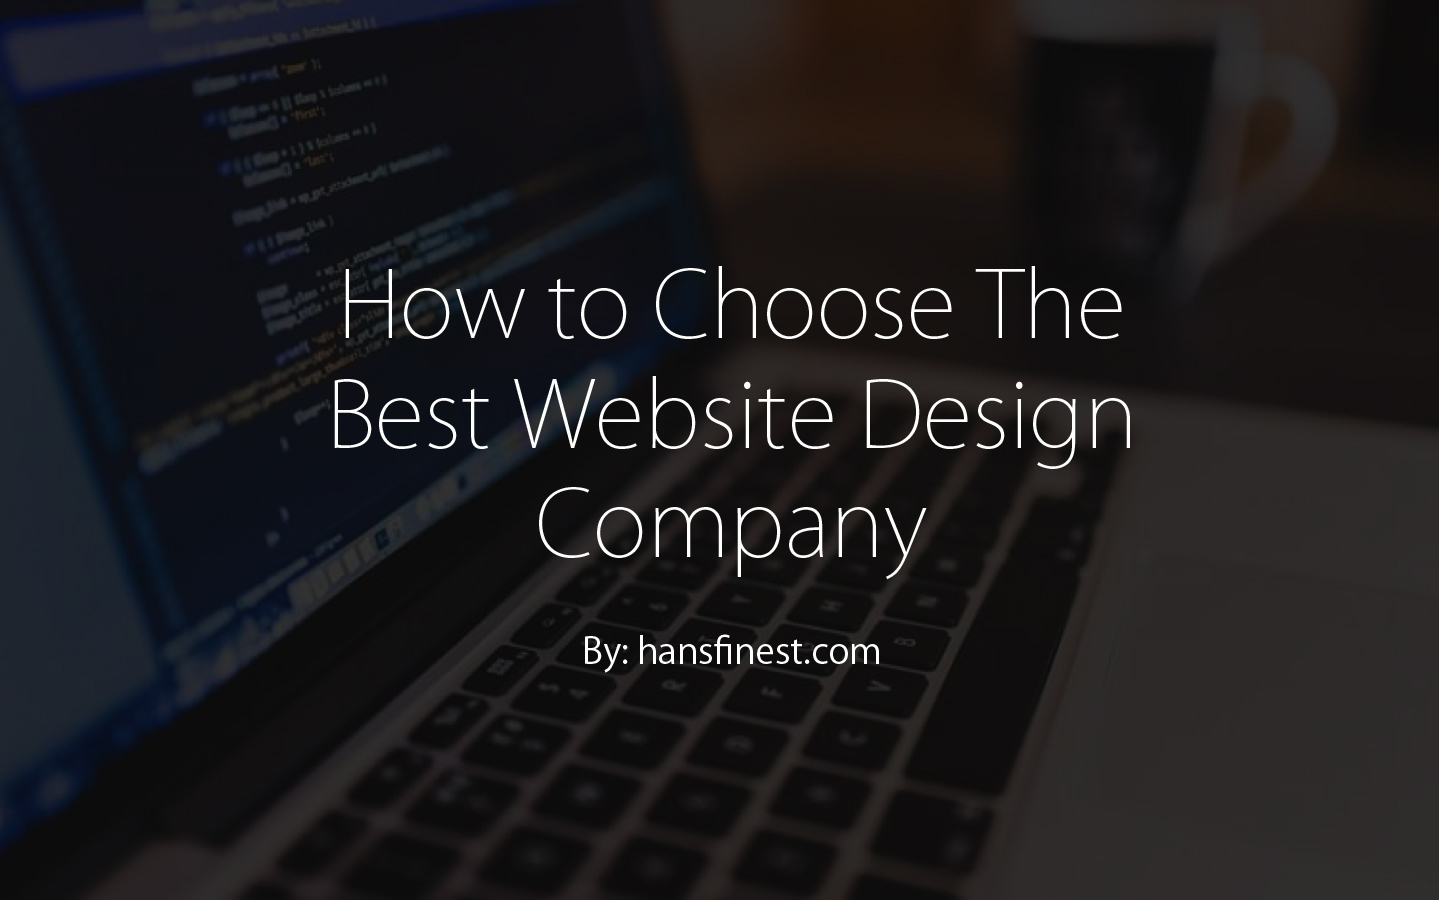 How to Choose The Best Website Design Company